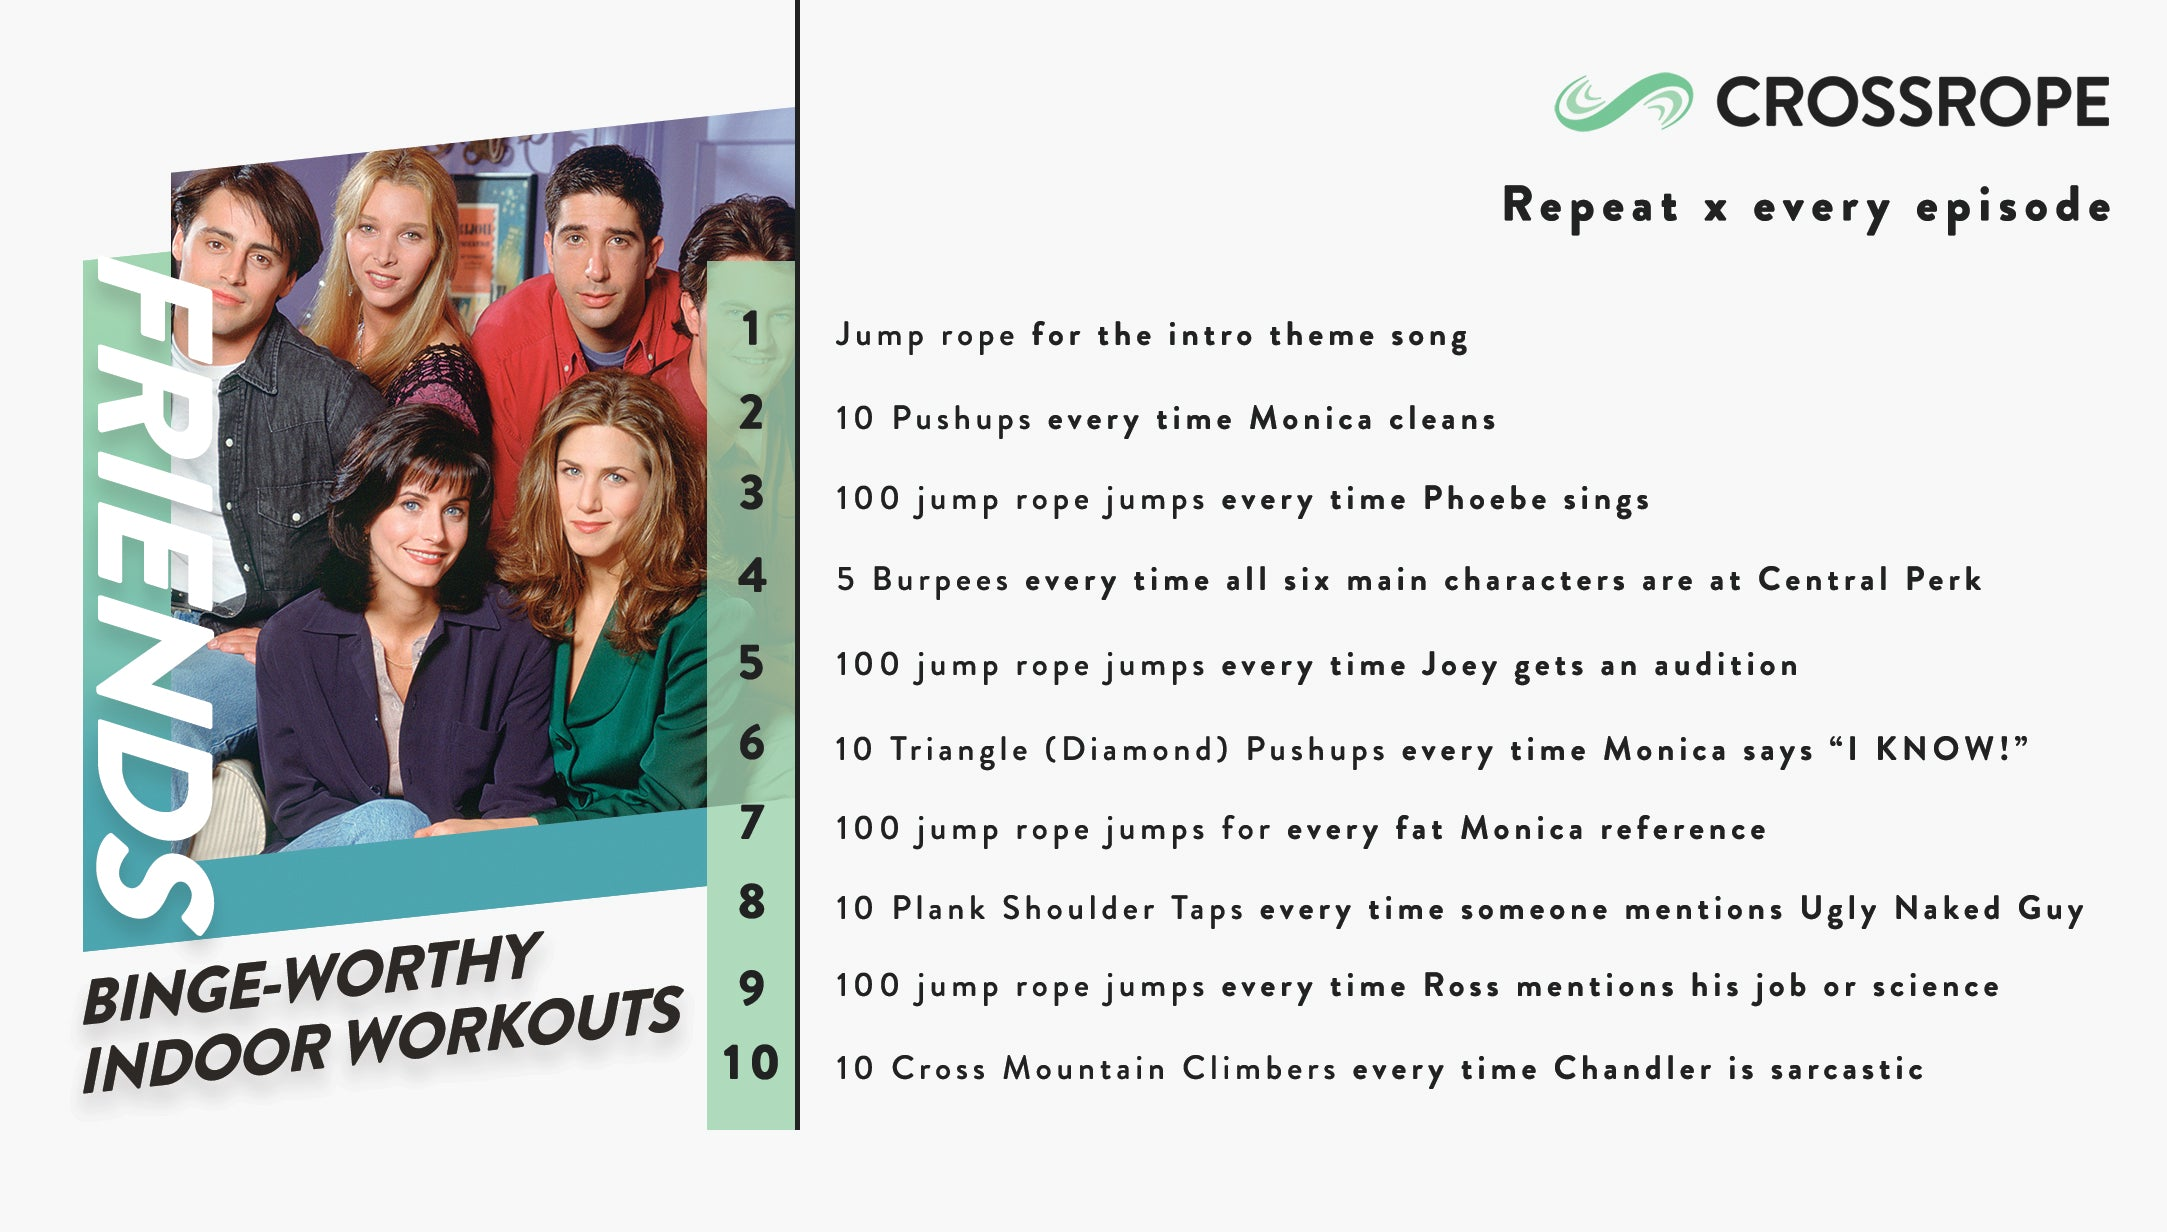 infographic image describing fun indoor workouts you can do while watching the TV show Friends